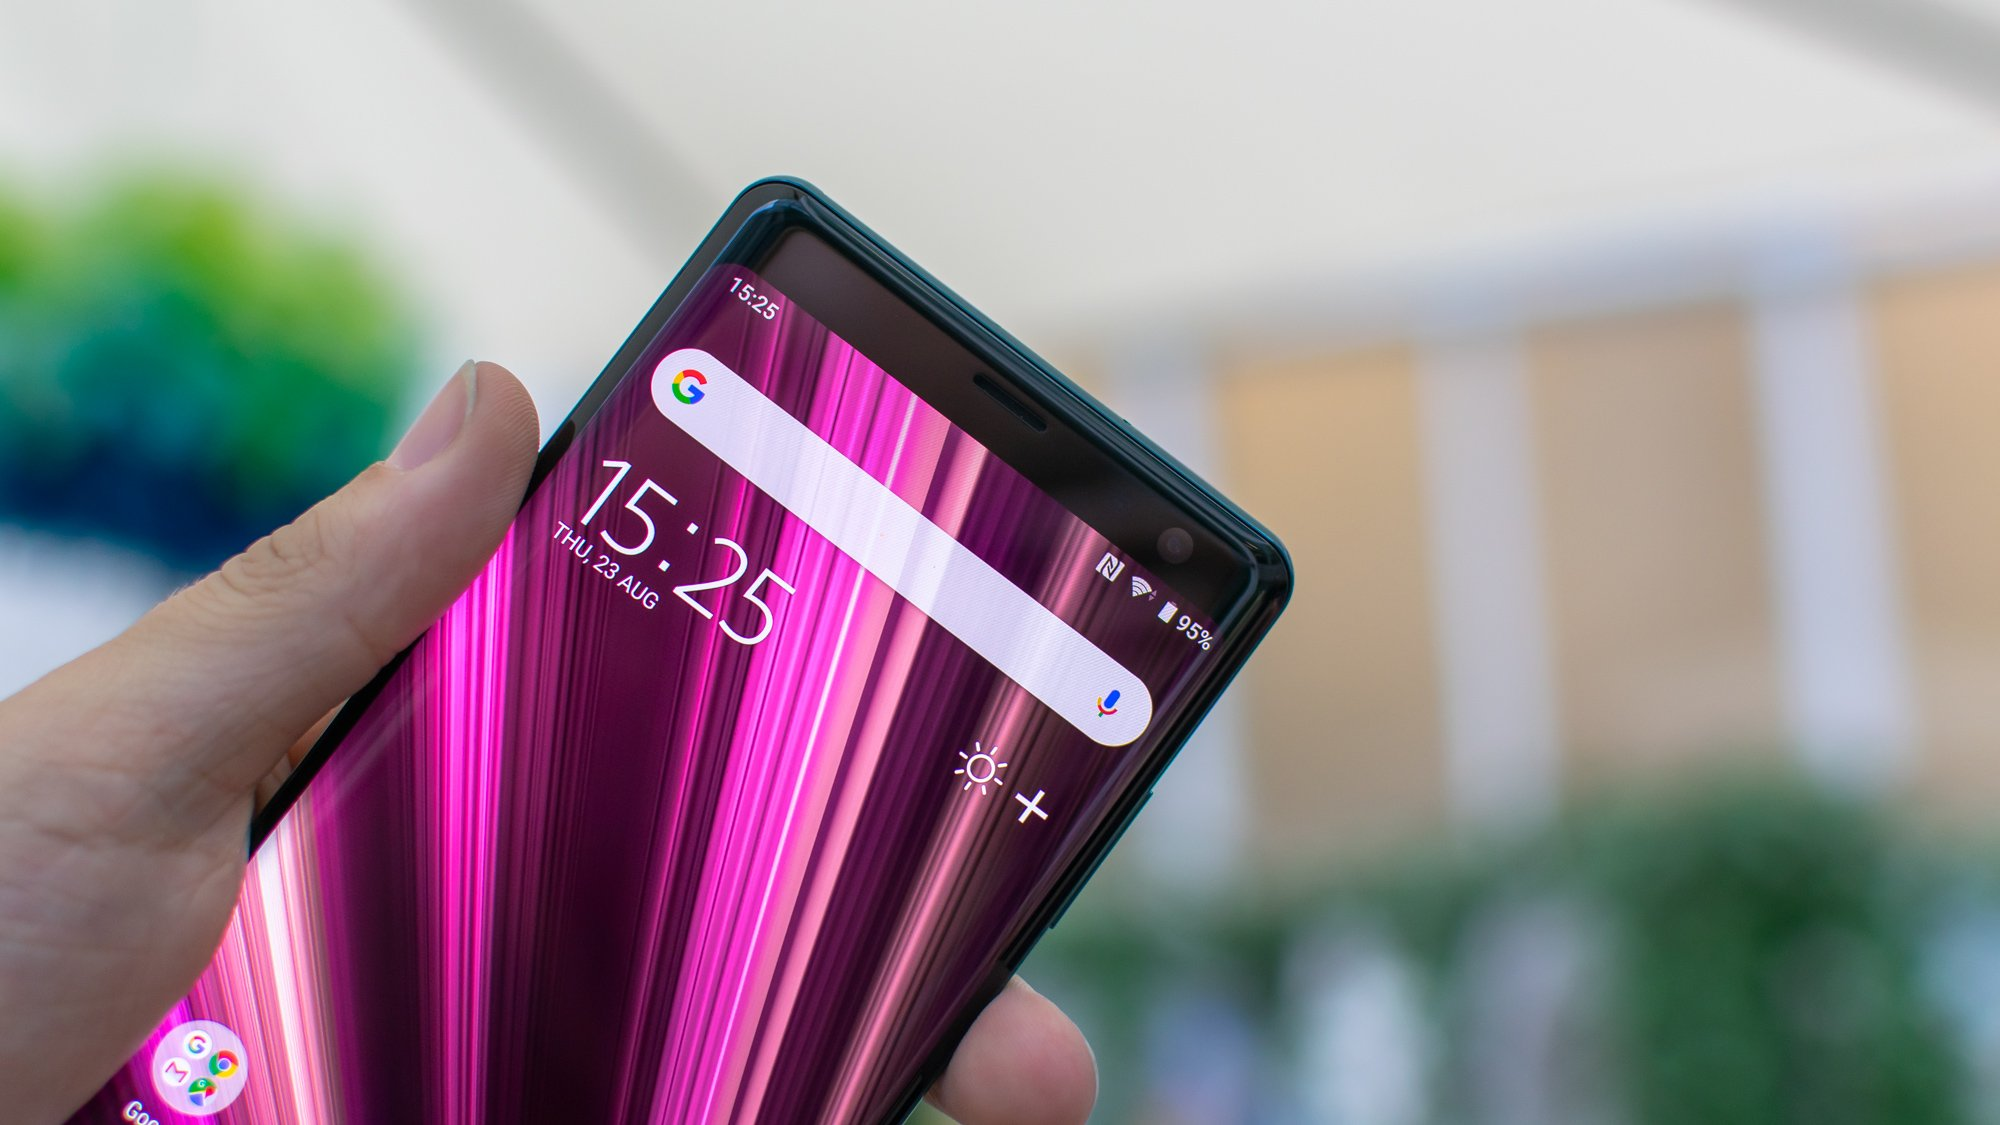 Sony's Xperia XZ3 with Android Pie, Curved OLED display gets launched